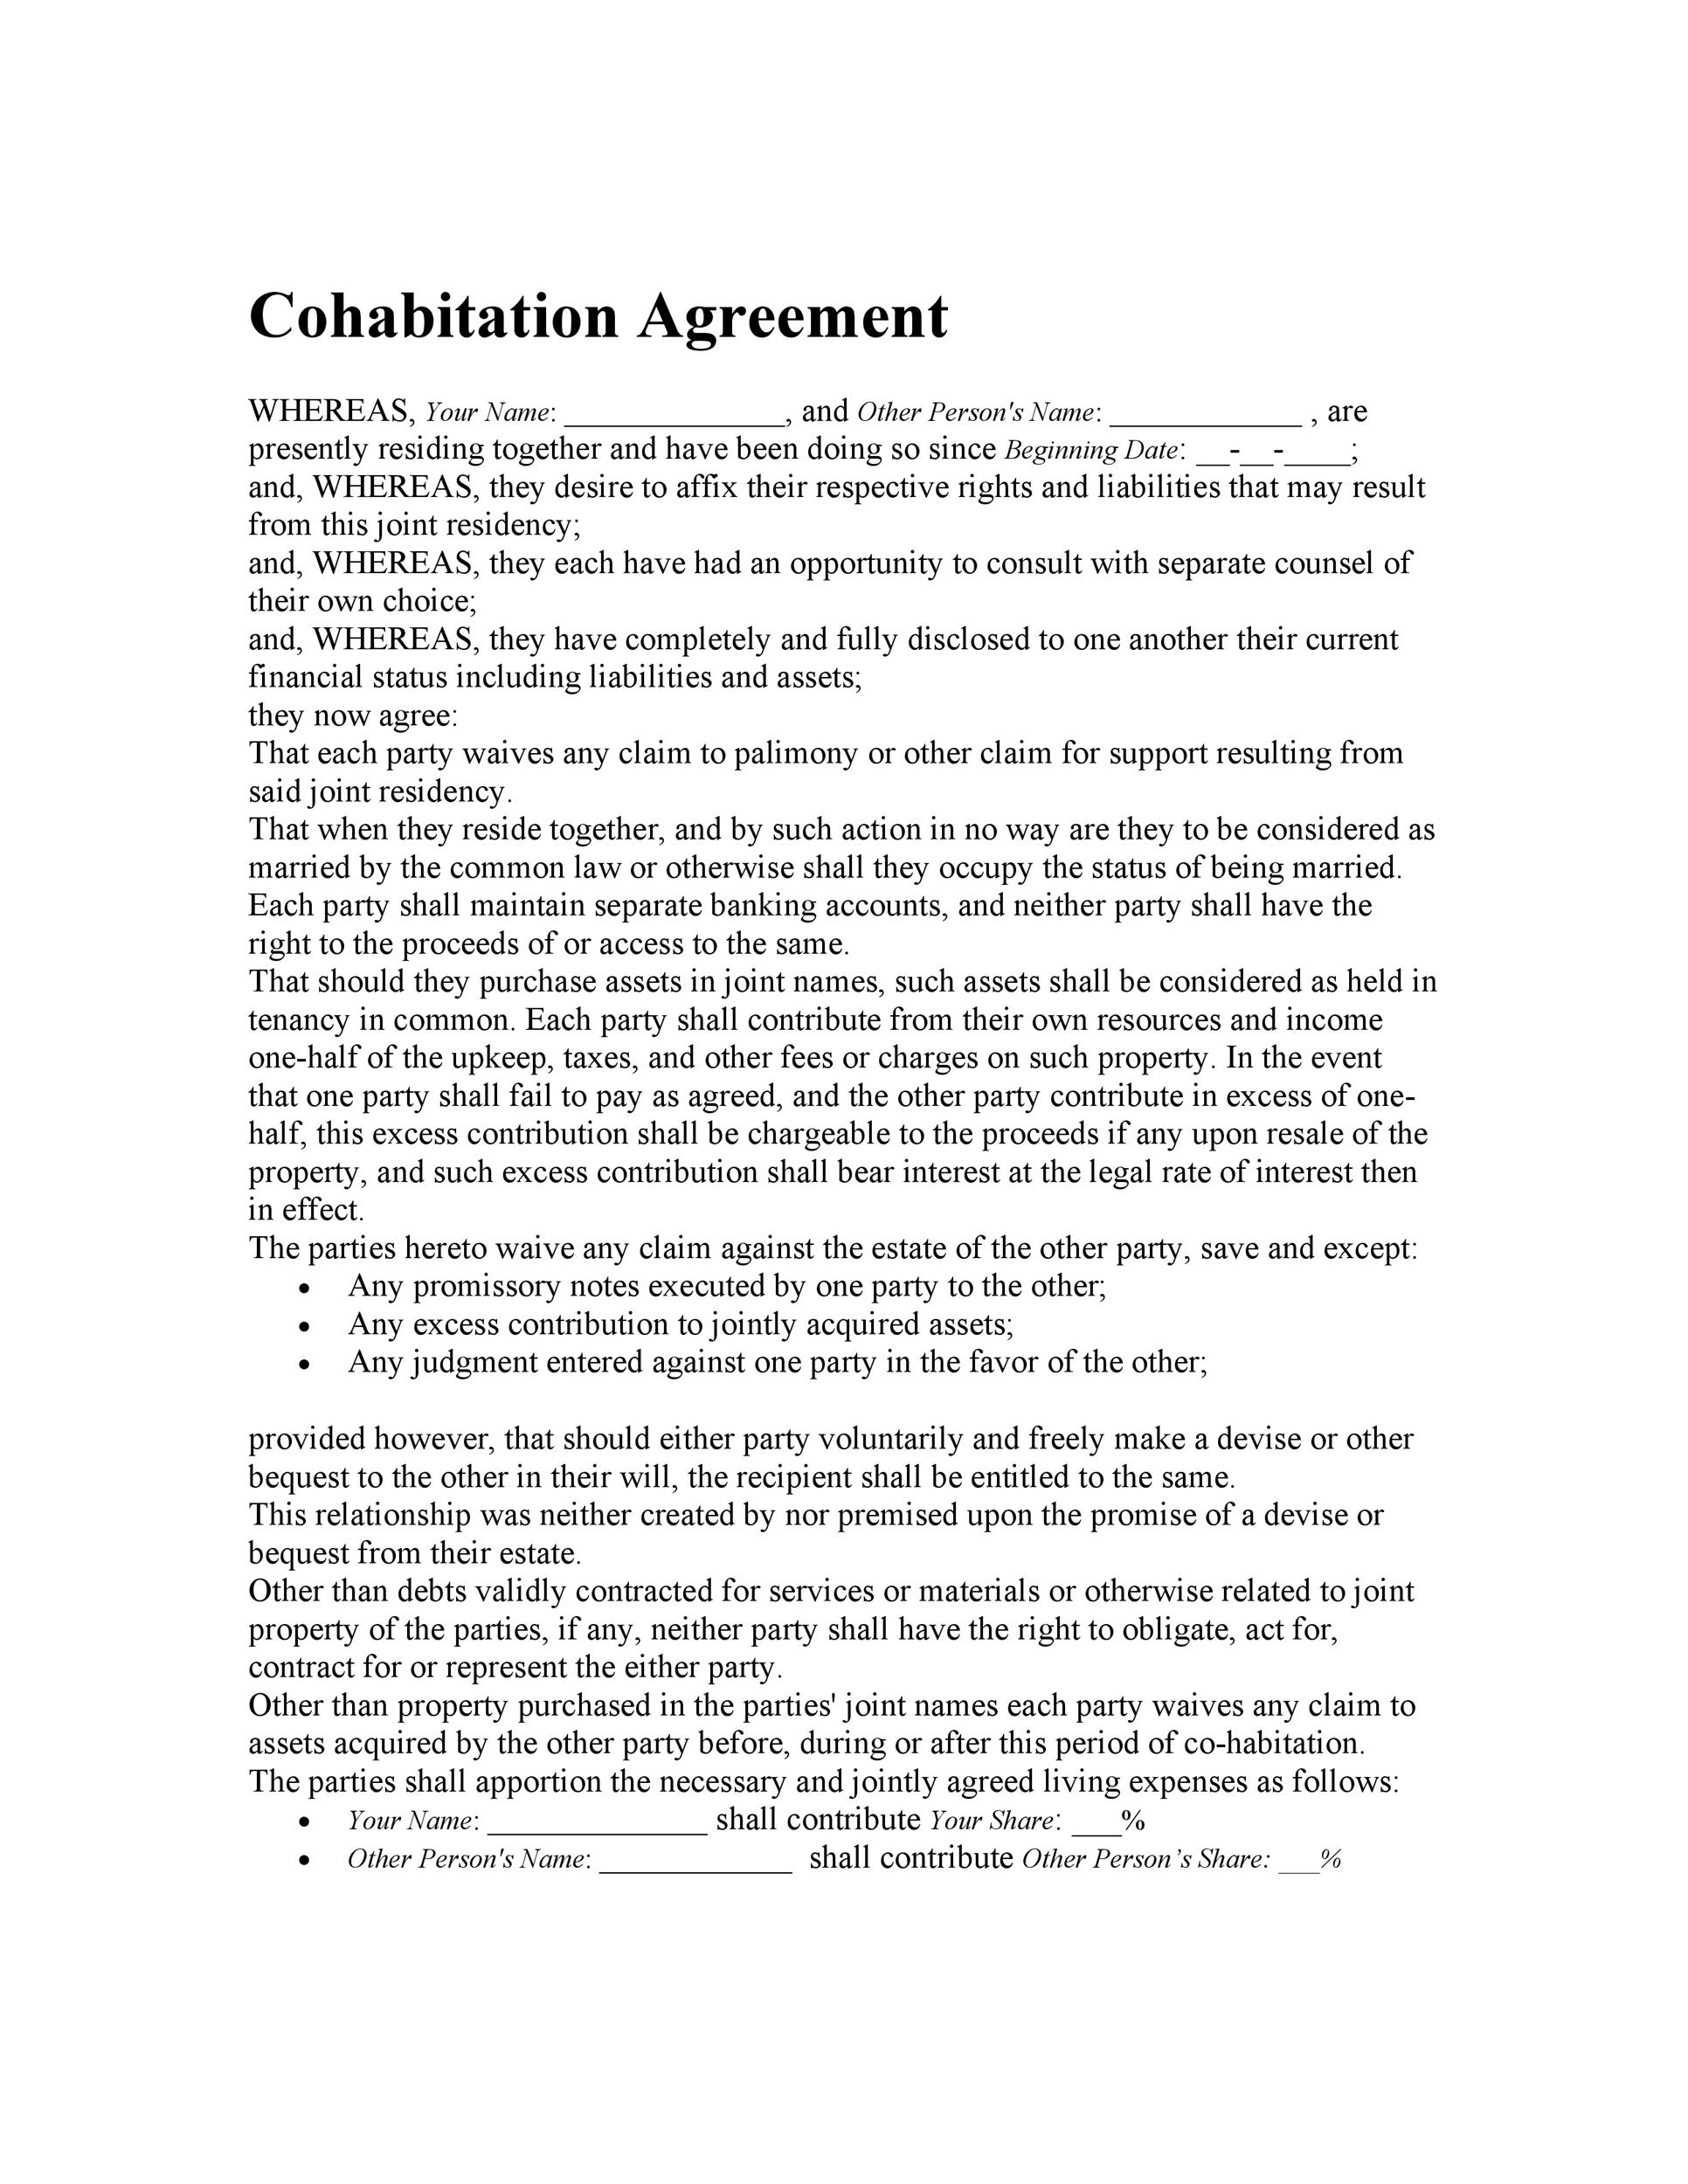 Free cohabitation agreement template 03